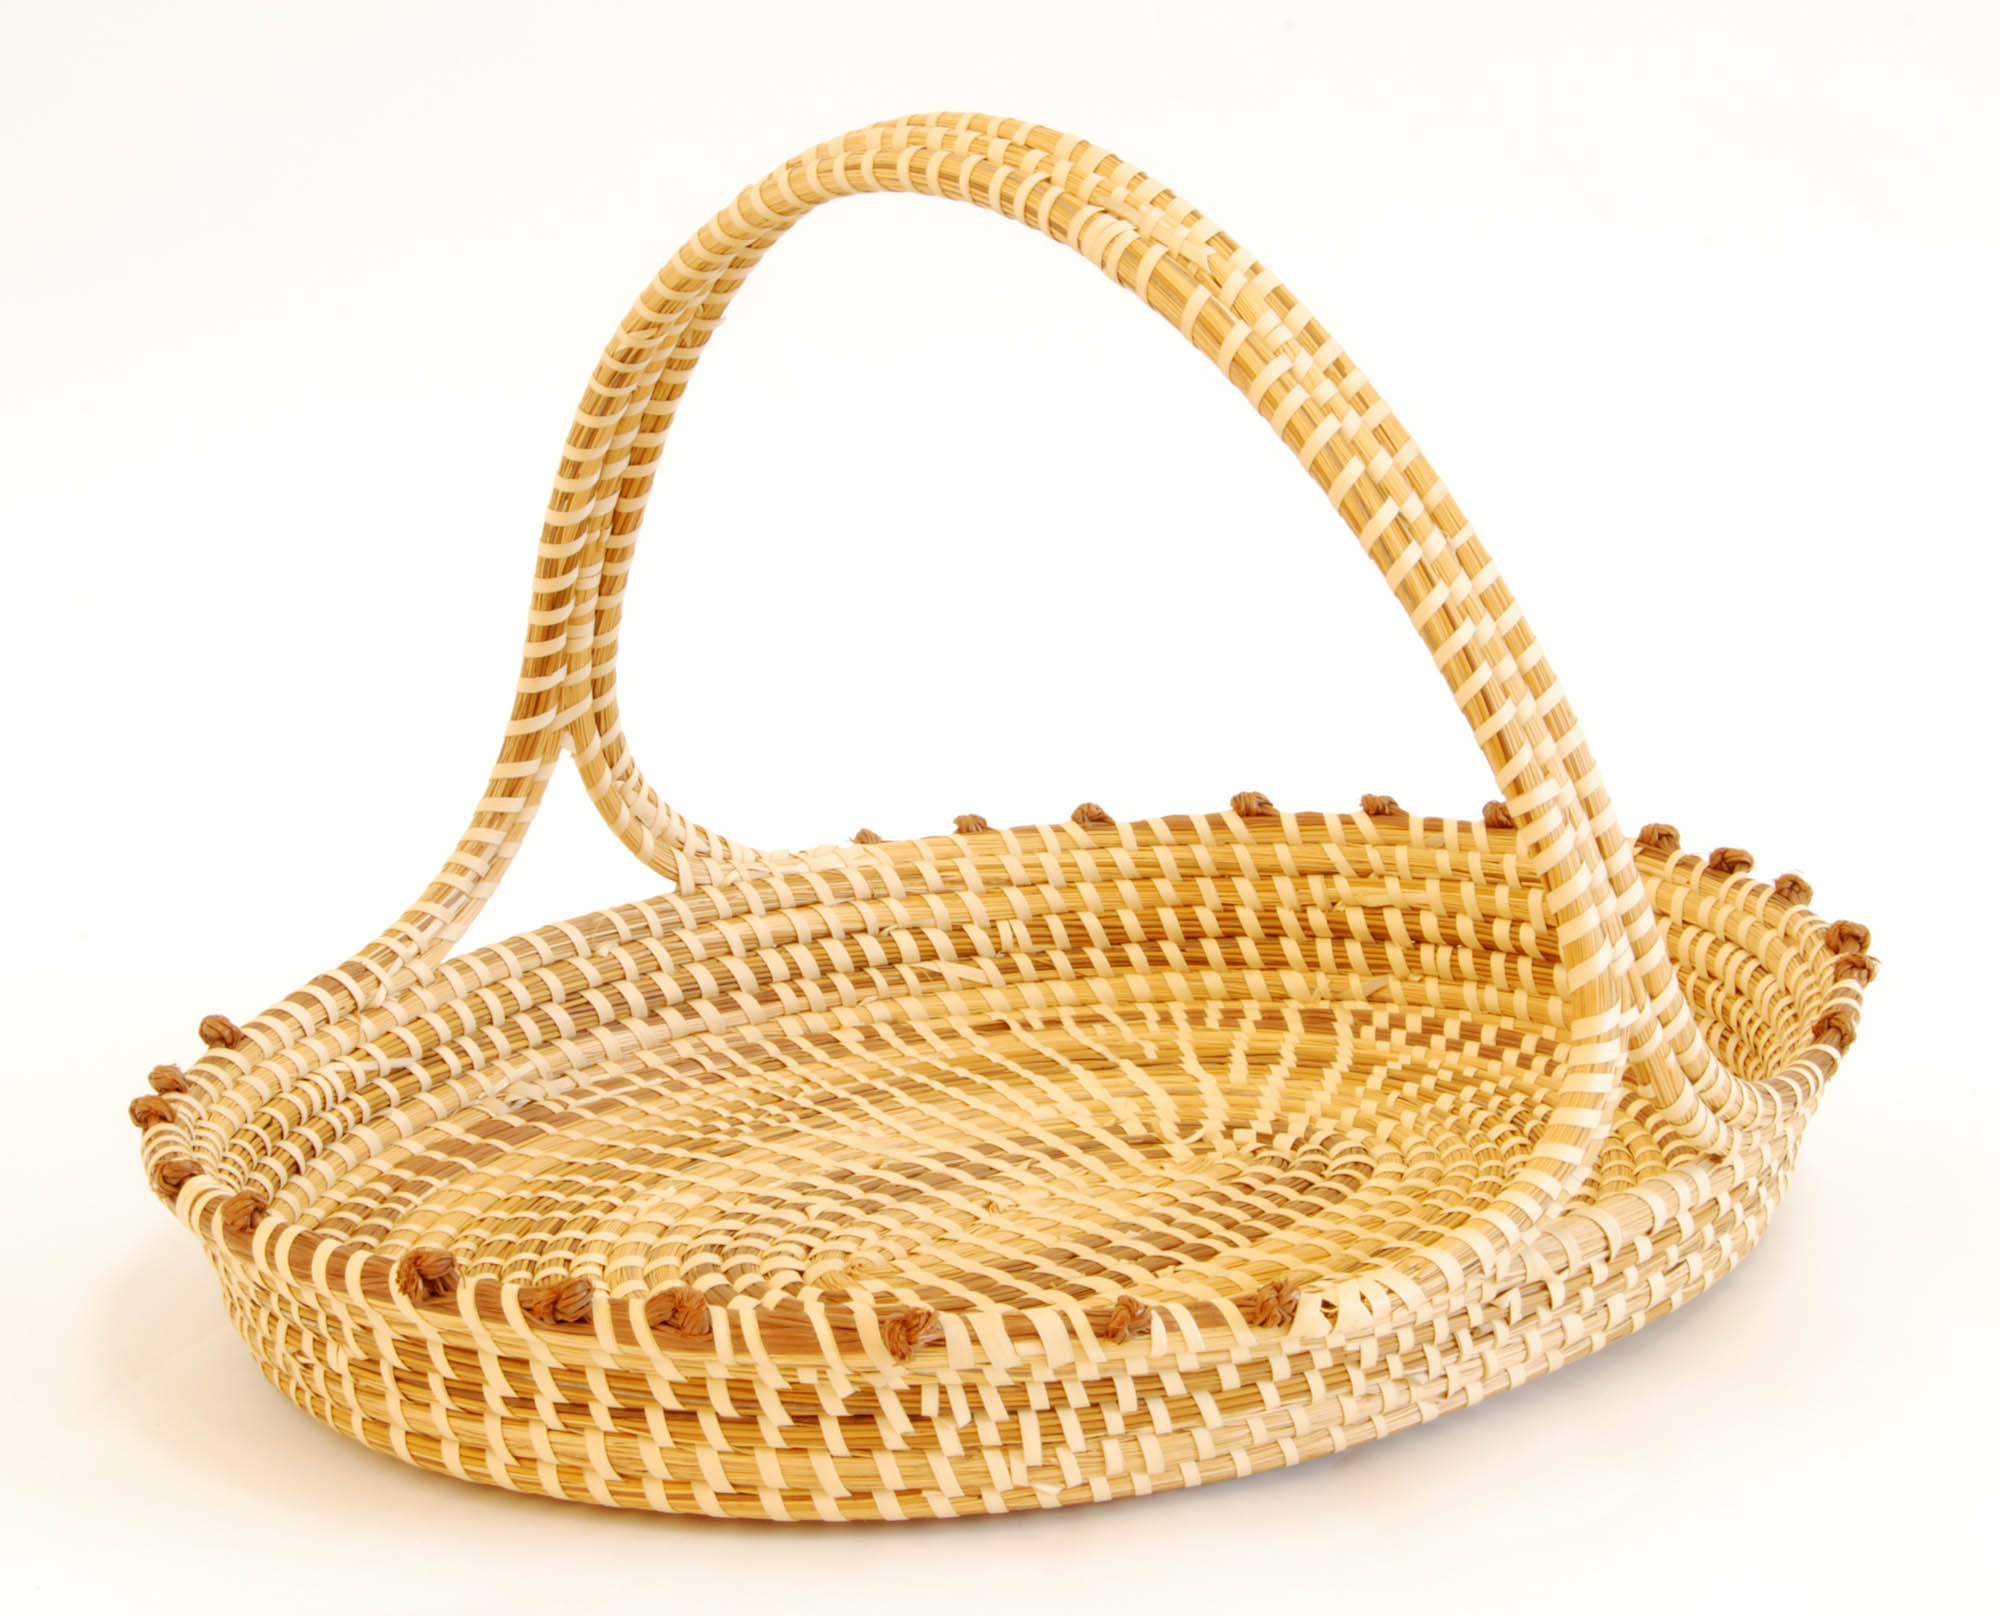 Sweetgrass magazine tray